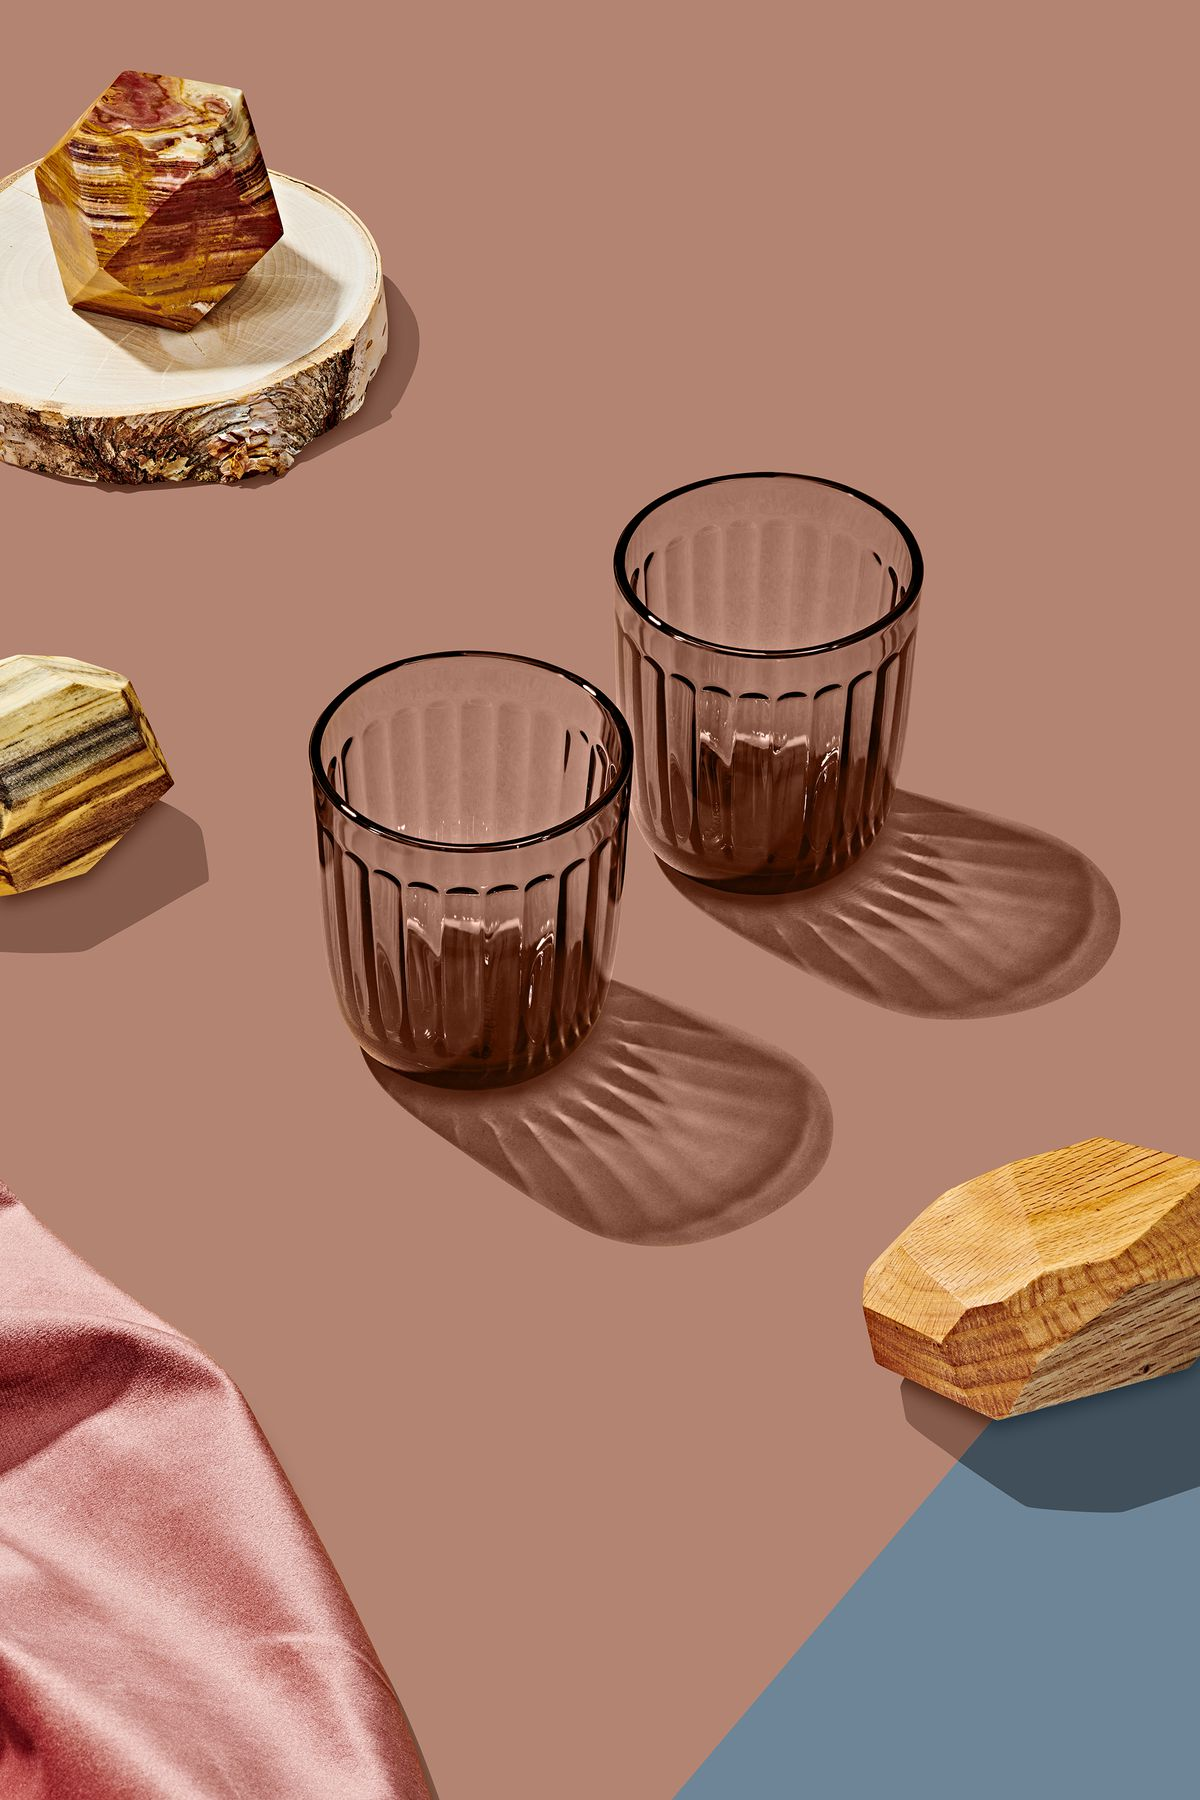 Two glass tumblers which are part of the Curbed Holiday Gift Guide 2019. The tumblers have ridges on the sides but are smooth to the touch. Around the tumblers are various design objects on a taupe surface.